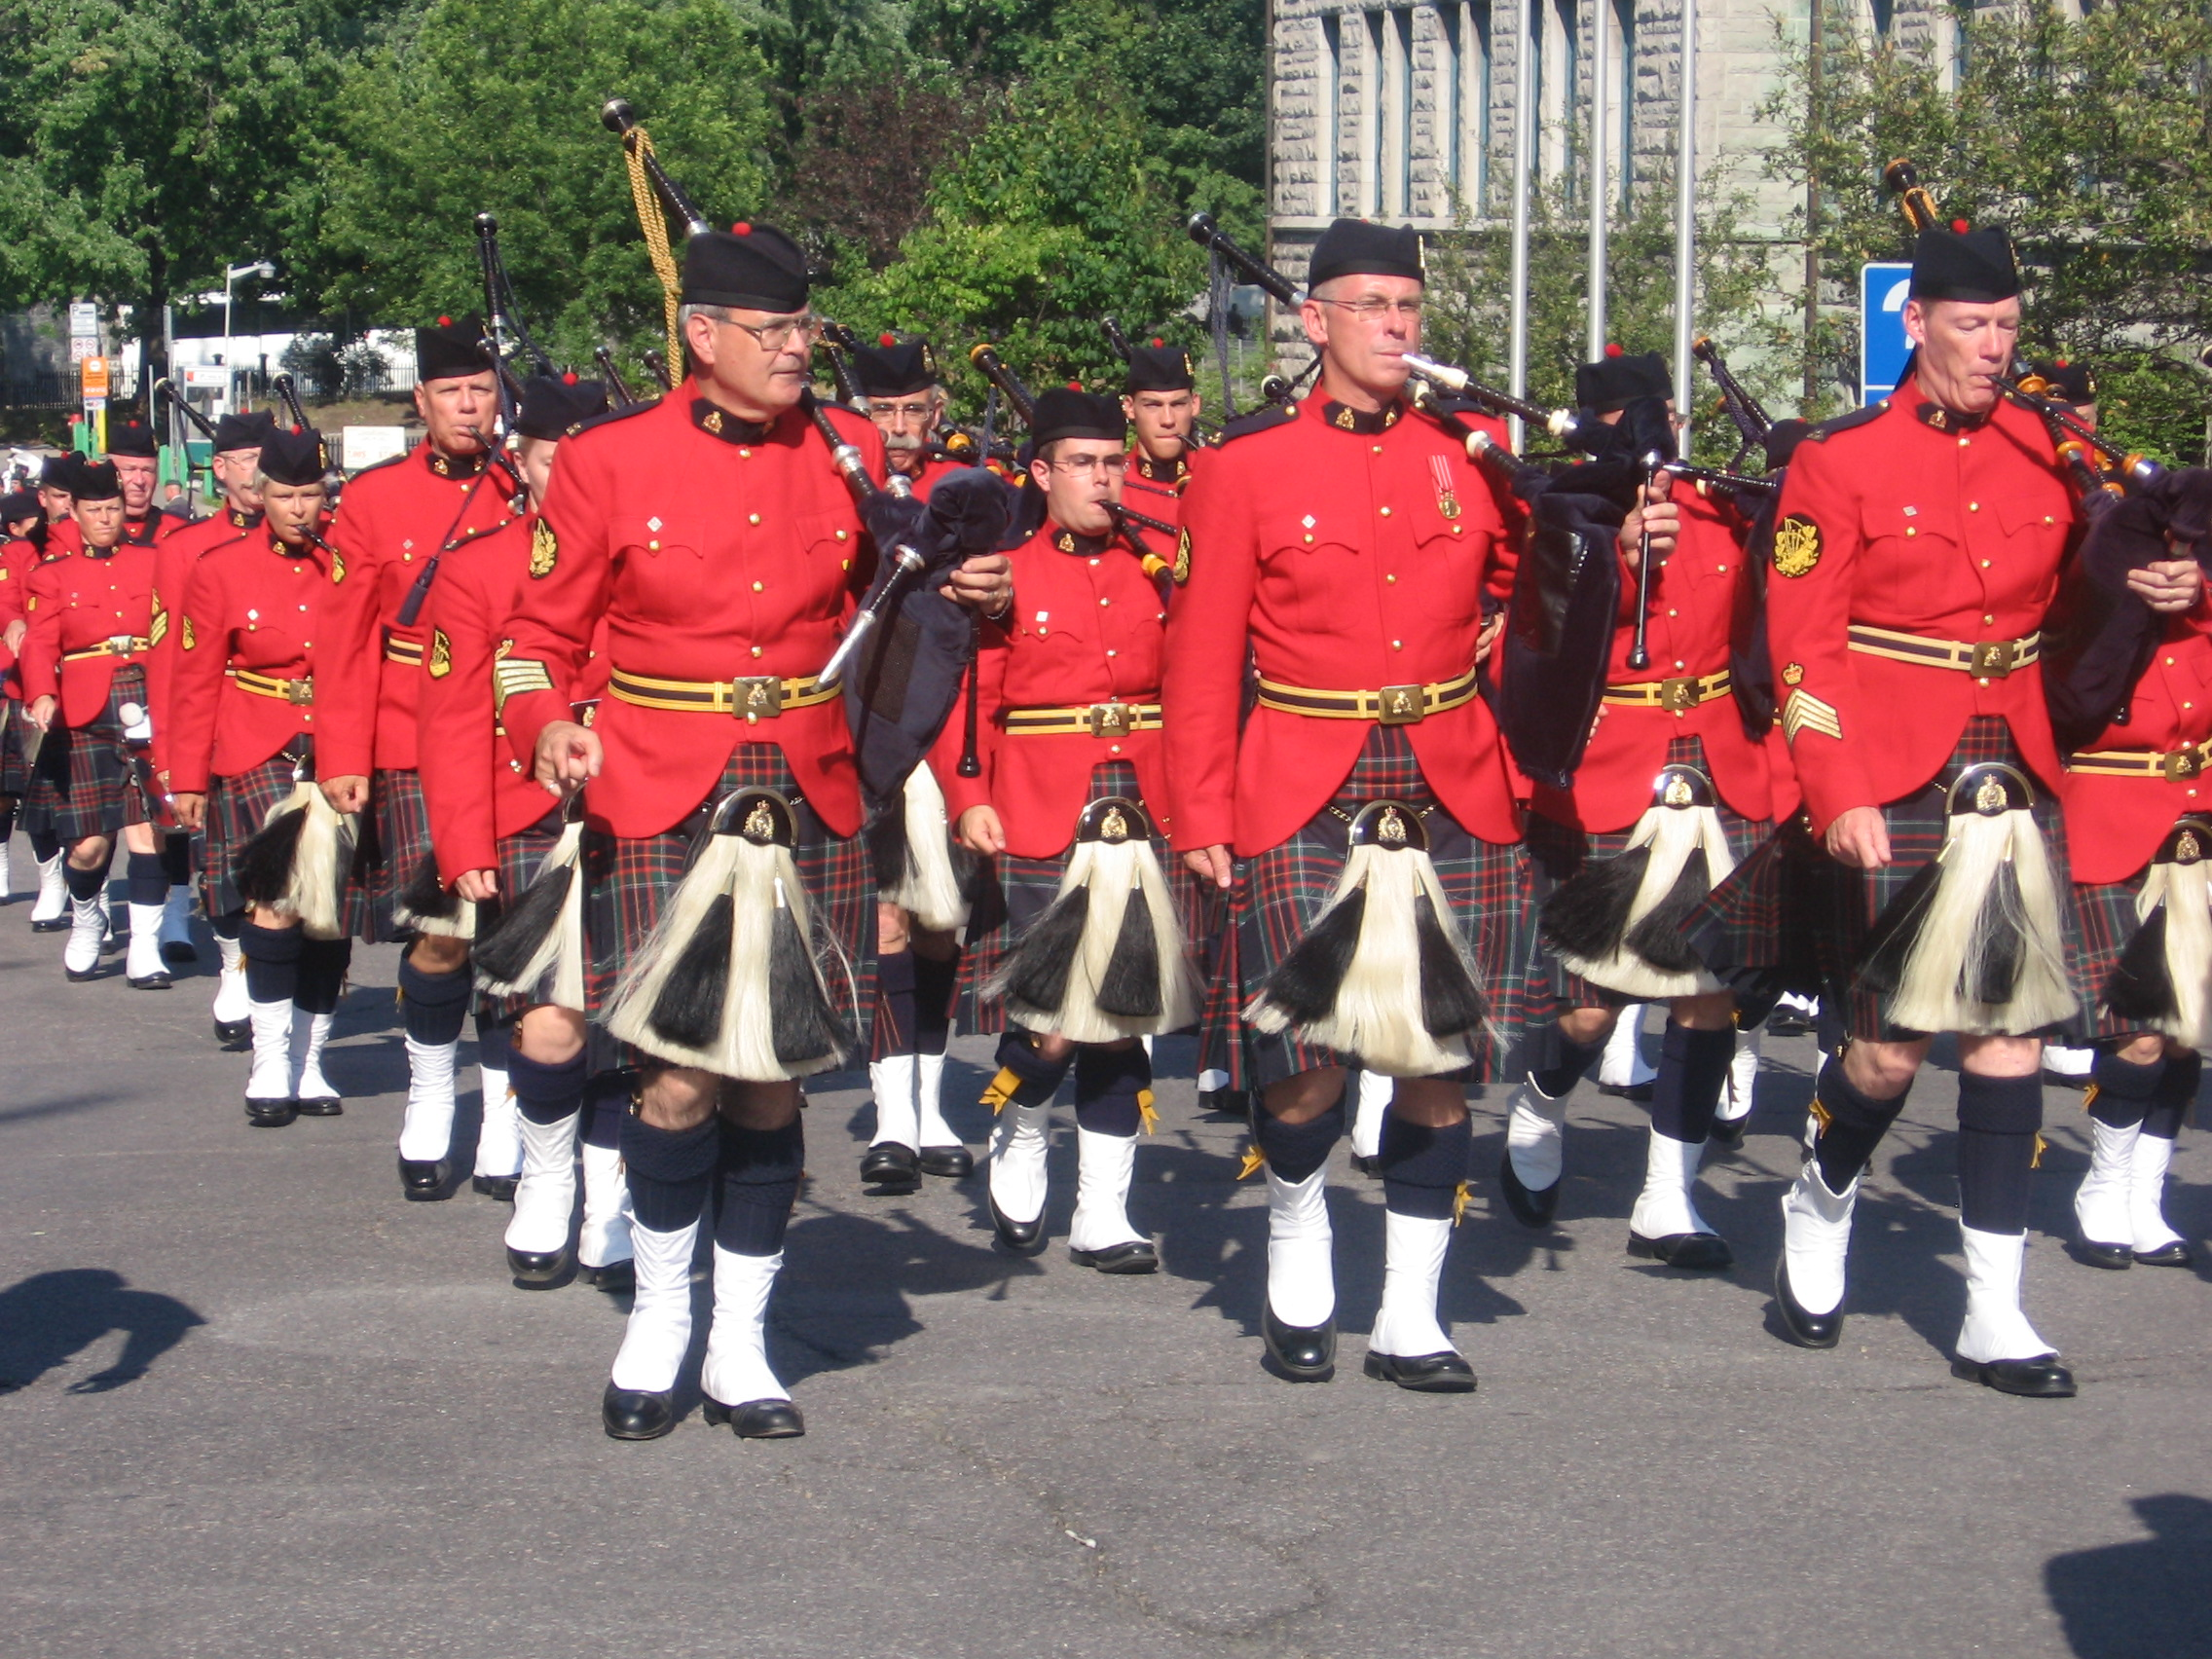 RCAF Pipe band Drum Major Uniform - Shoulder to Shoulder ... |Police Pipe Band Uniforms